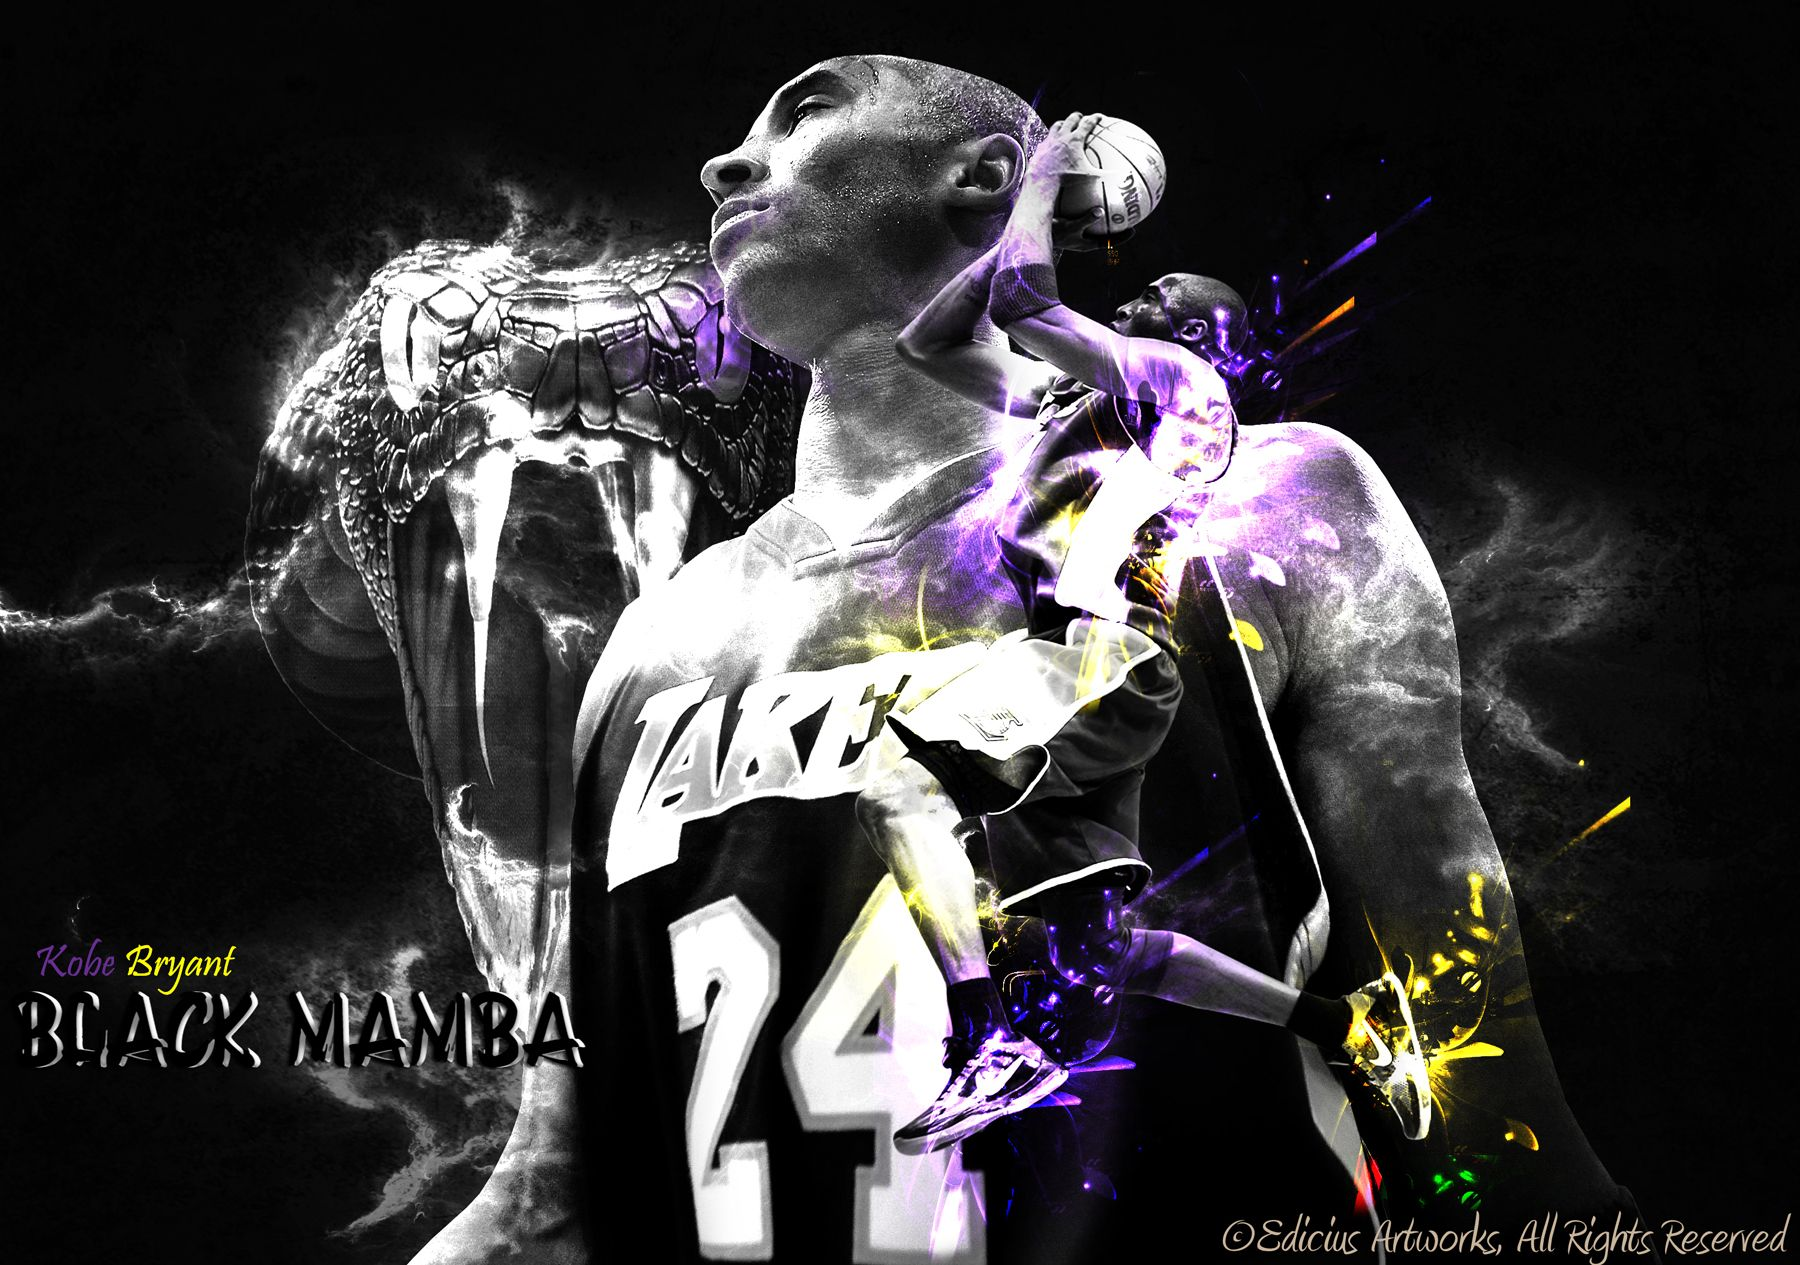 Kobe Bryant (Black Mamba) This is by far the best